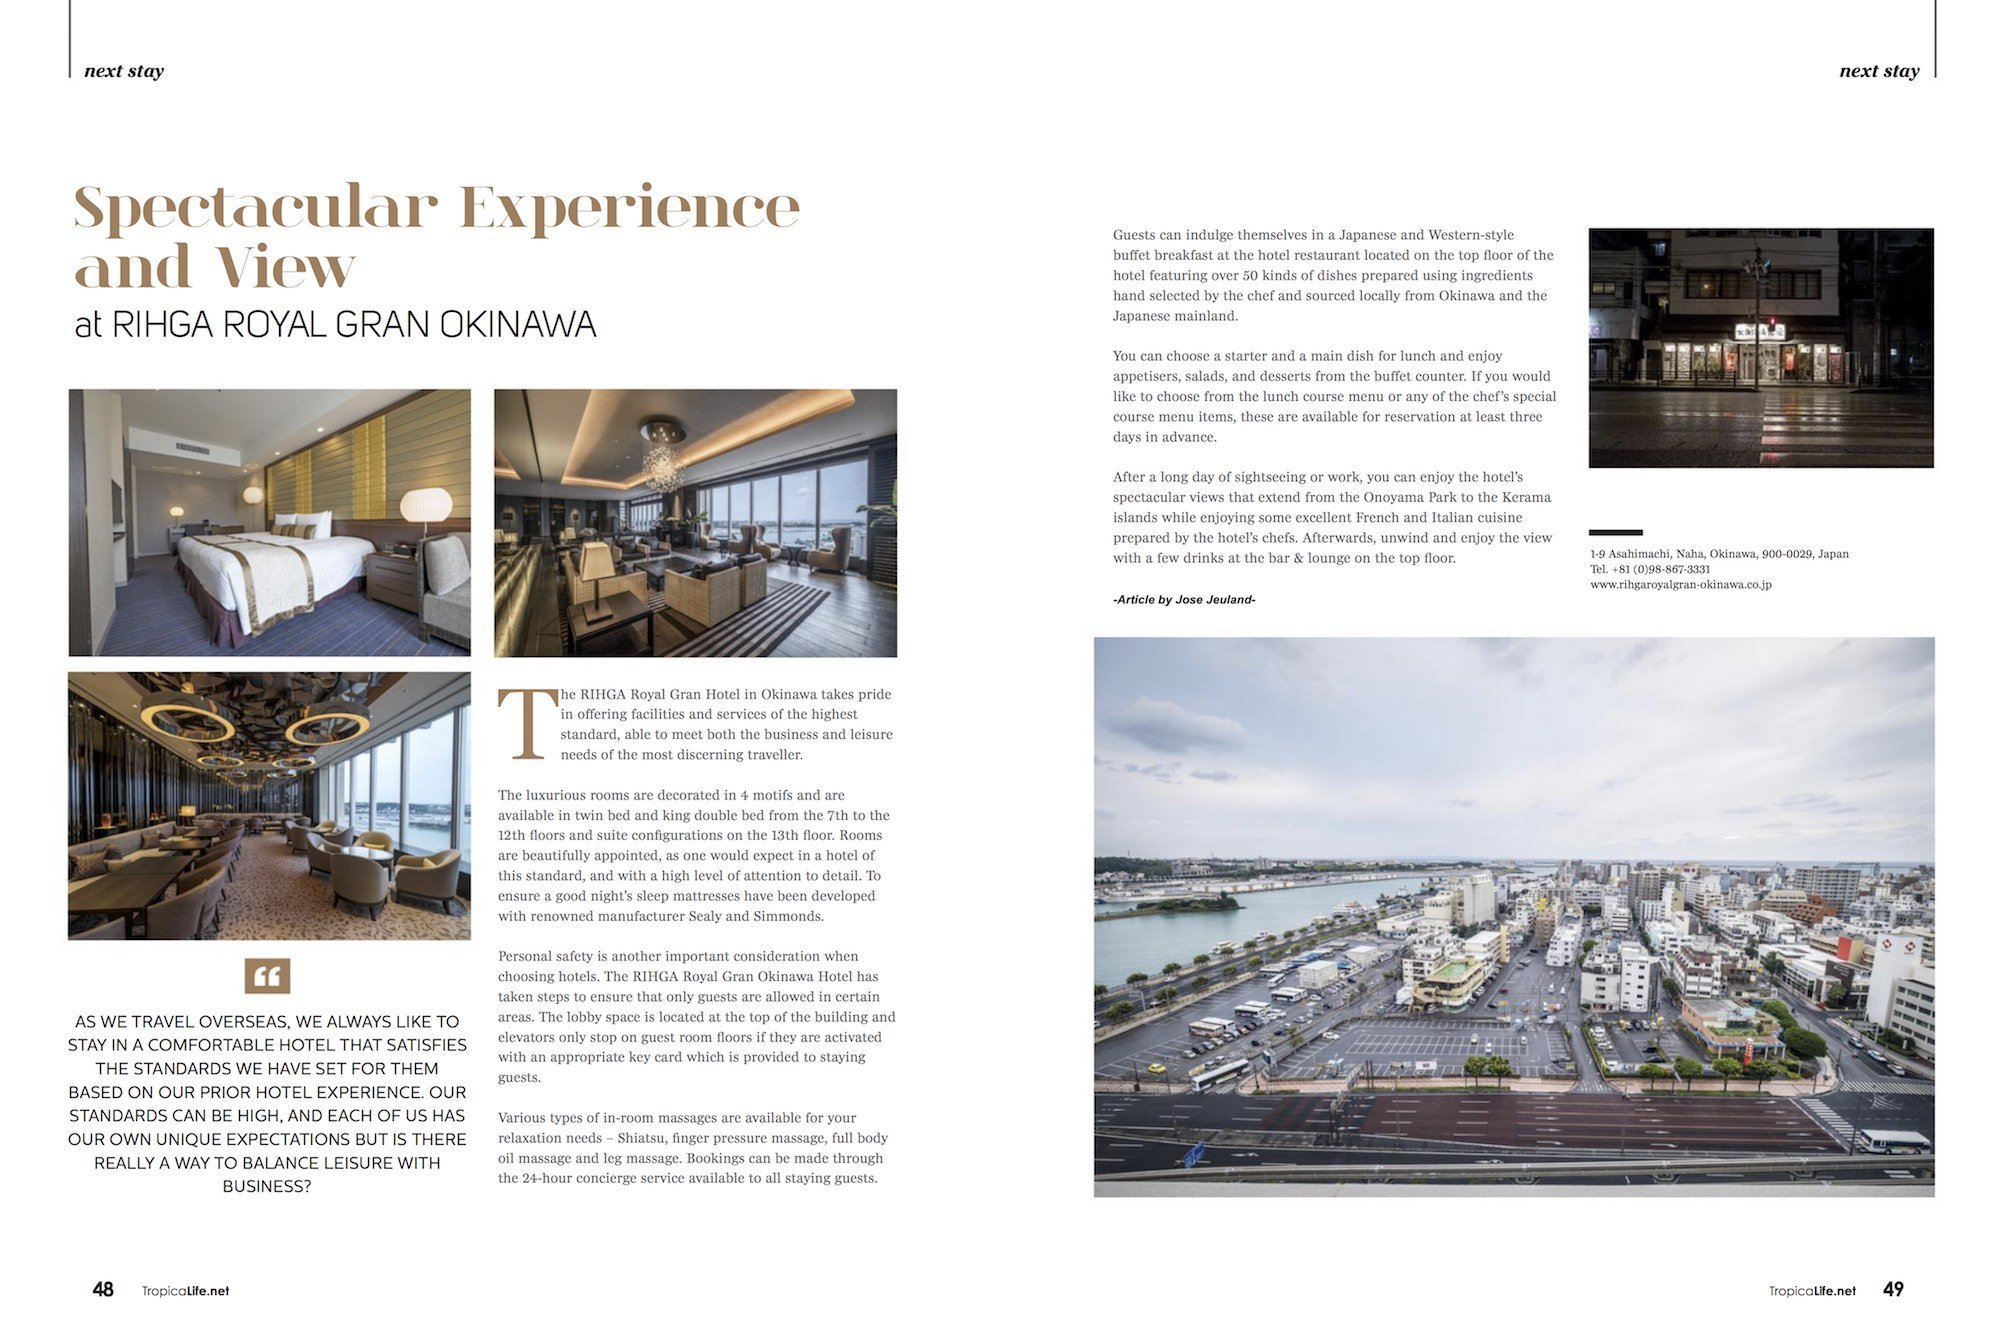 Tropical Life Magazine Travel Journey Okinawa Japan Jose Jeuland Hotel RIHGA ROYAL GRAN OKINAWA photographer Singapore